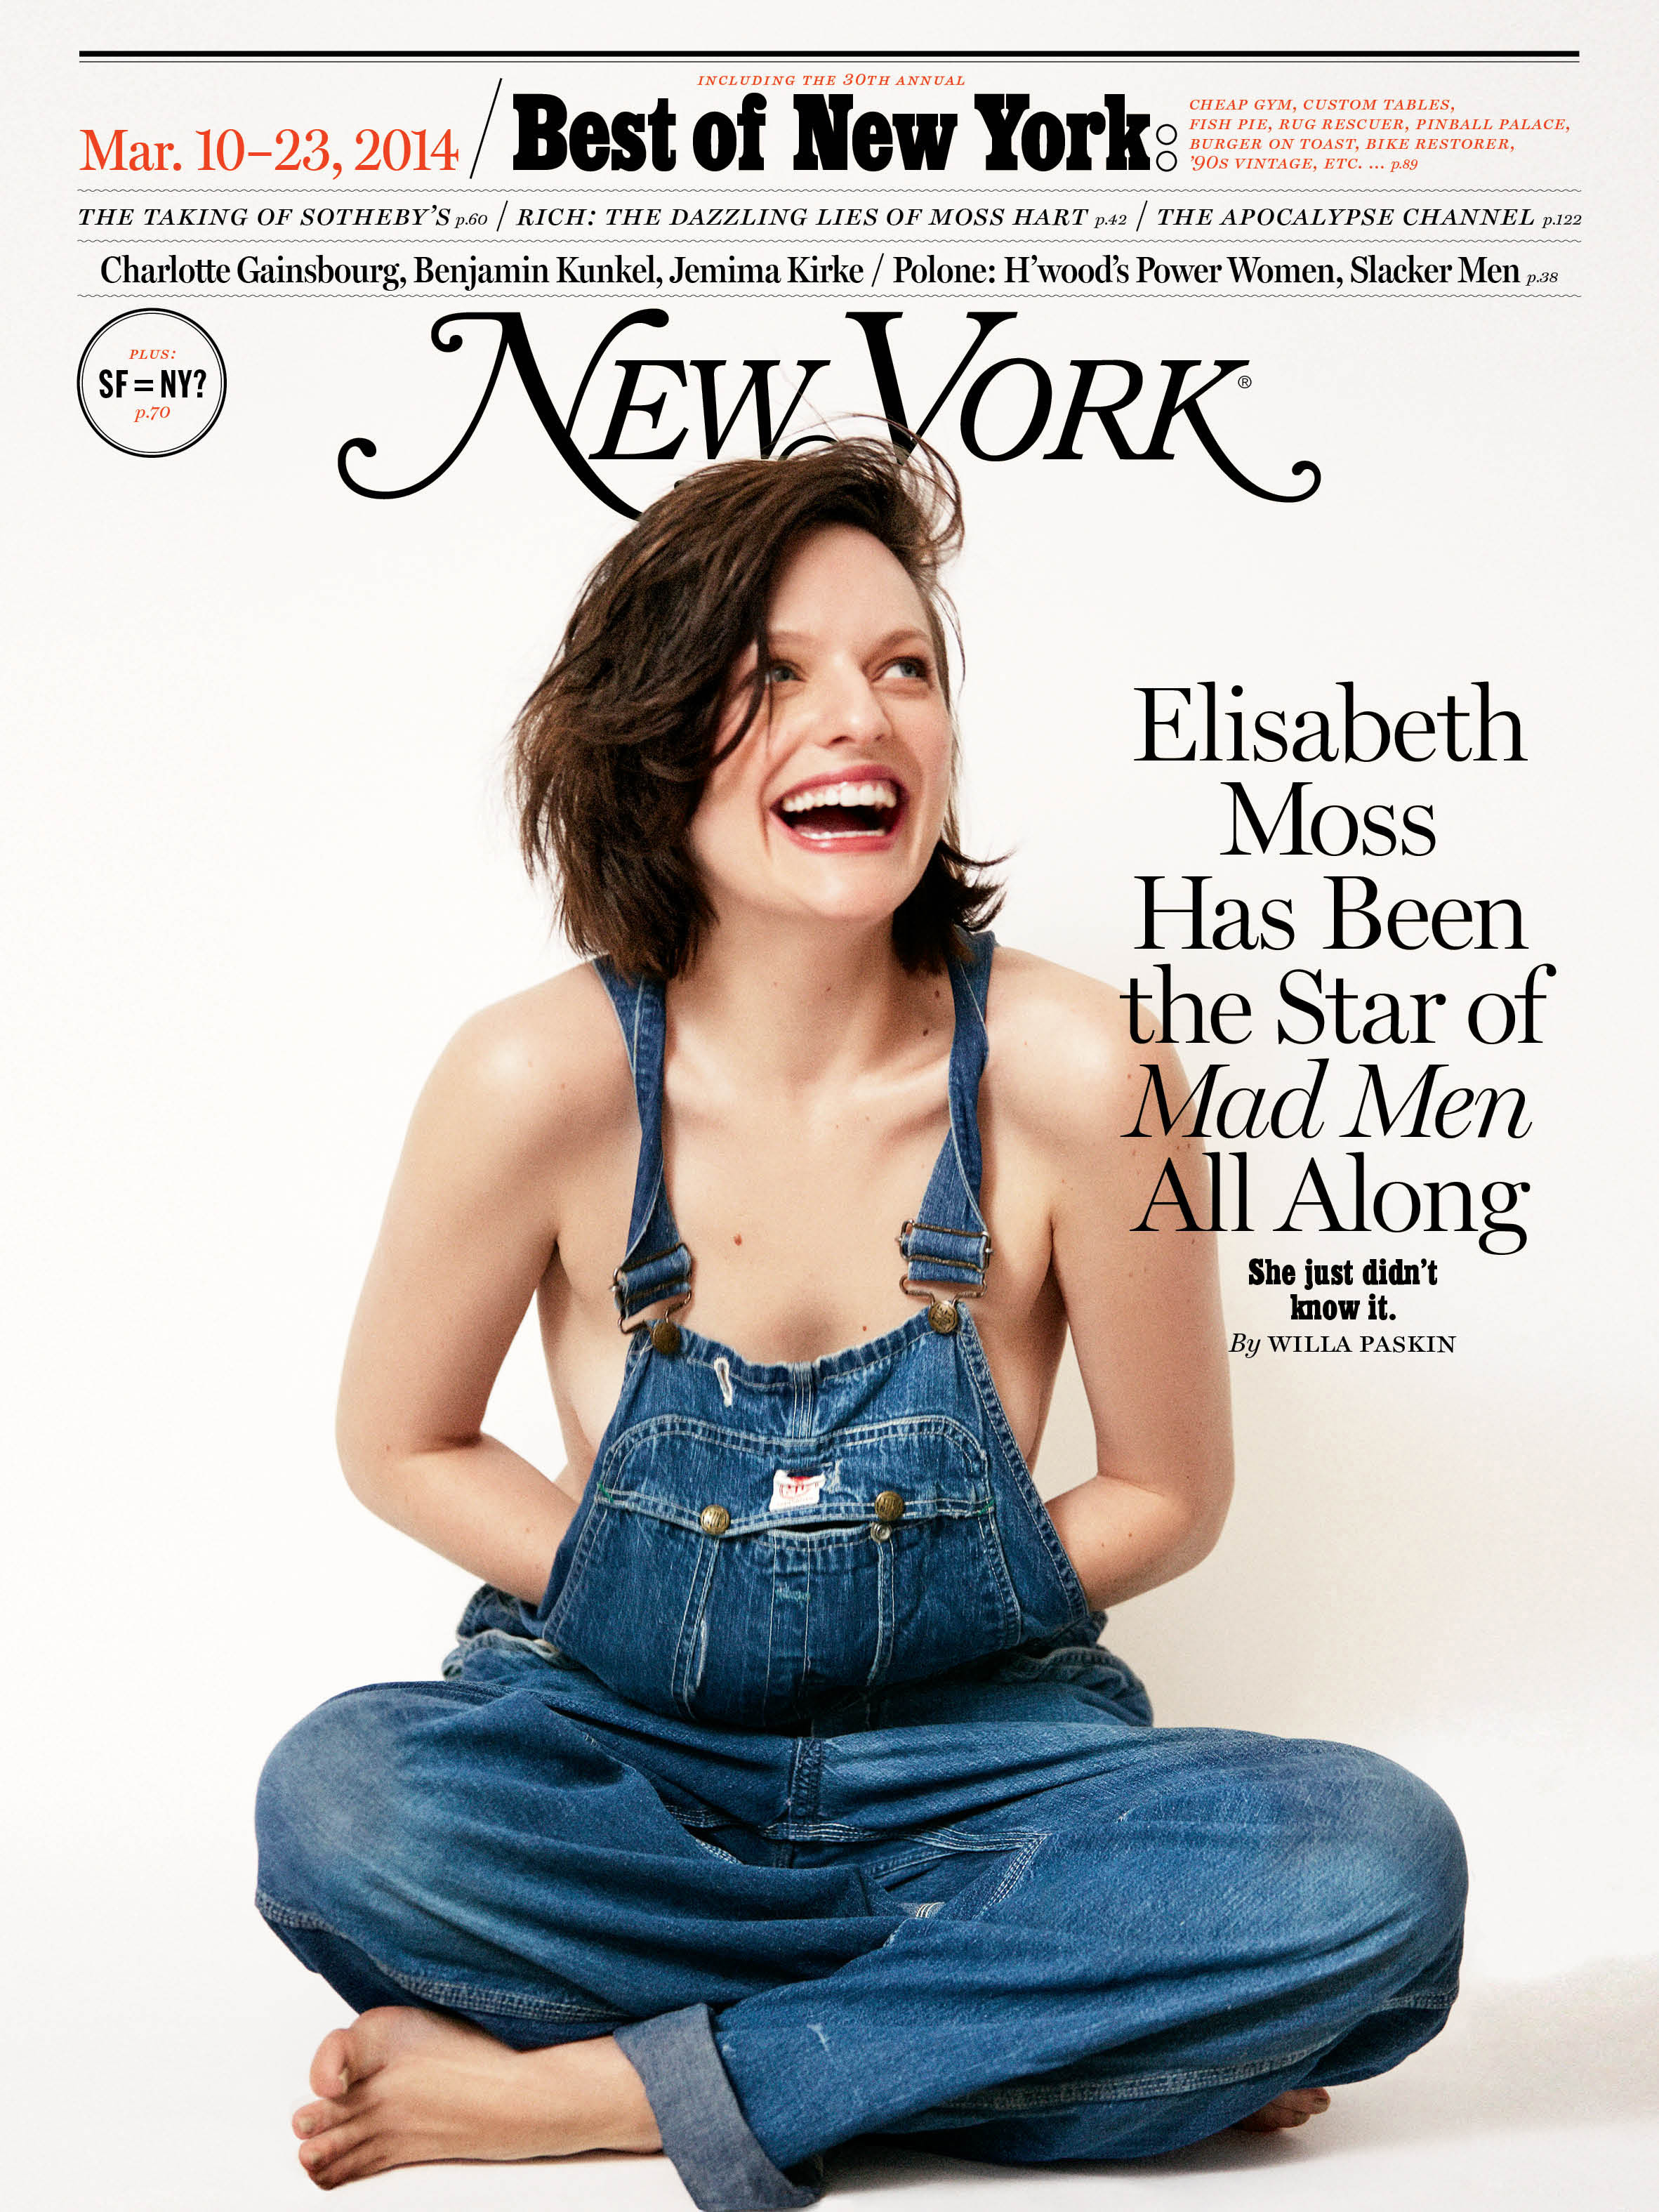 Elisabeth Moss on the cover of New York Magazine